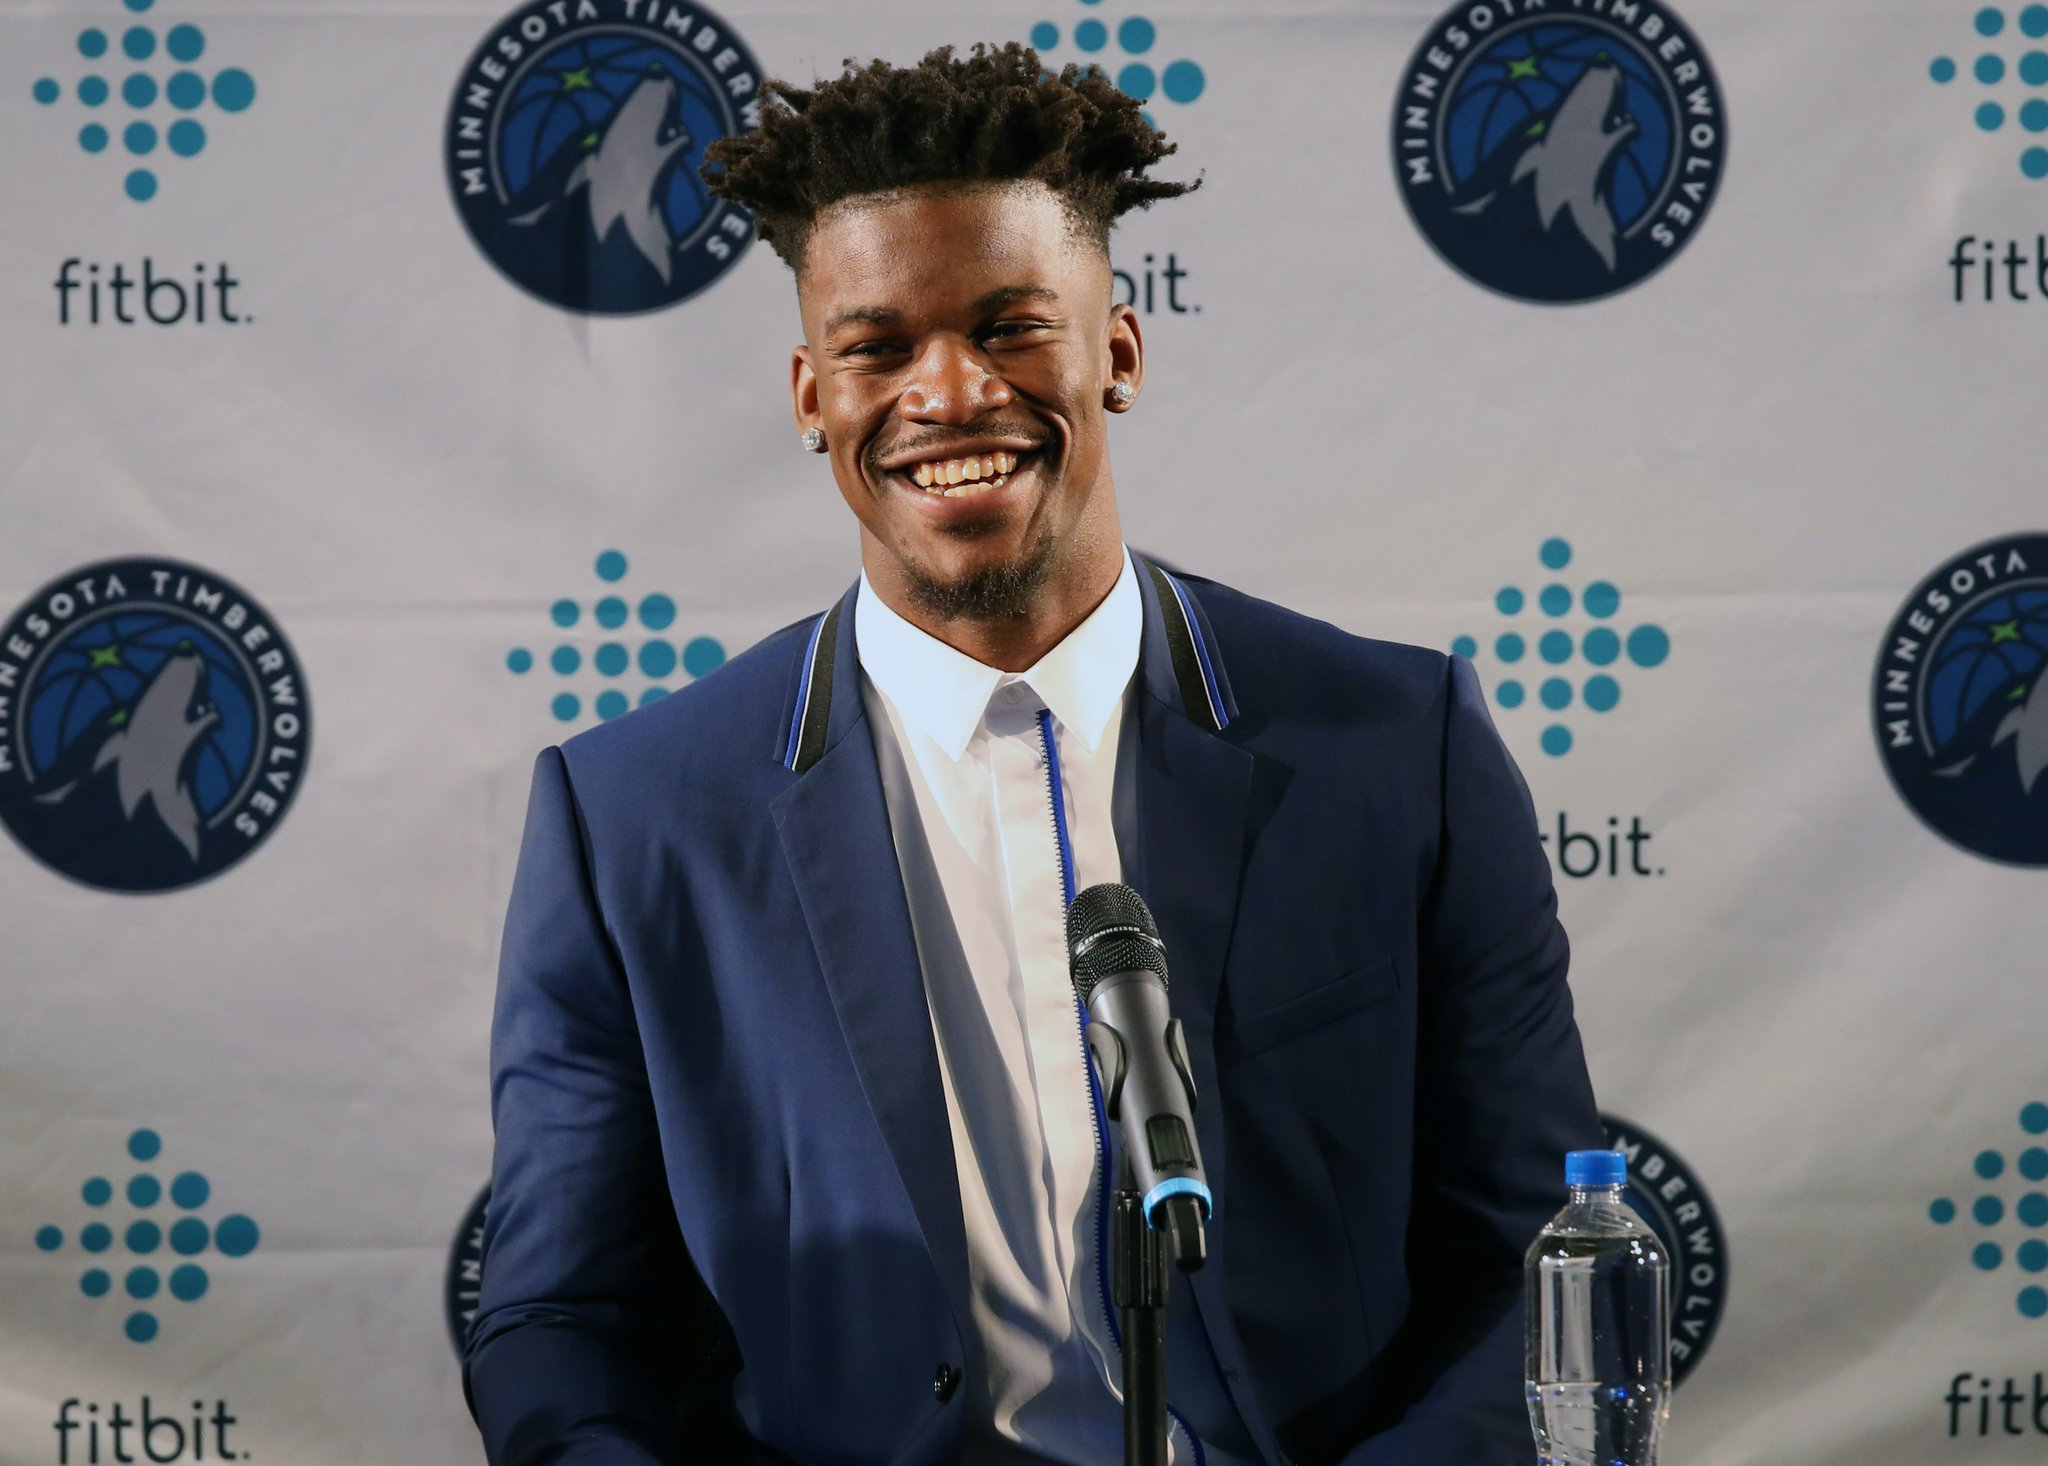 Join us in wishing @JimmyButler of the @Timberwolves a HAPPY 28th BIRTHDAY! #NBABDAY https://t.co/hONp2oBz9d